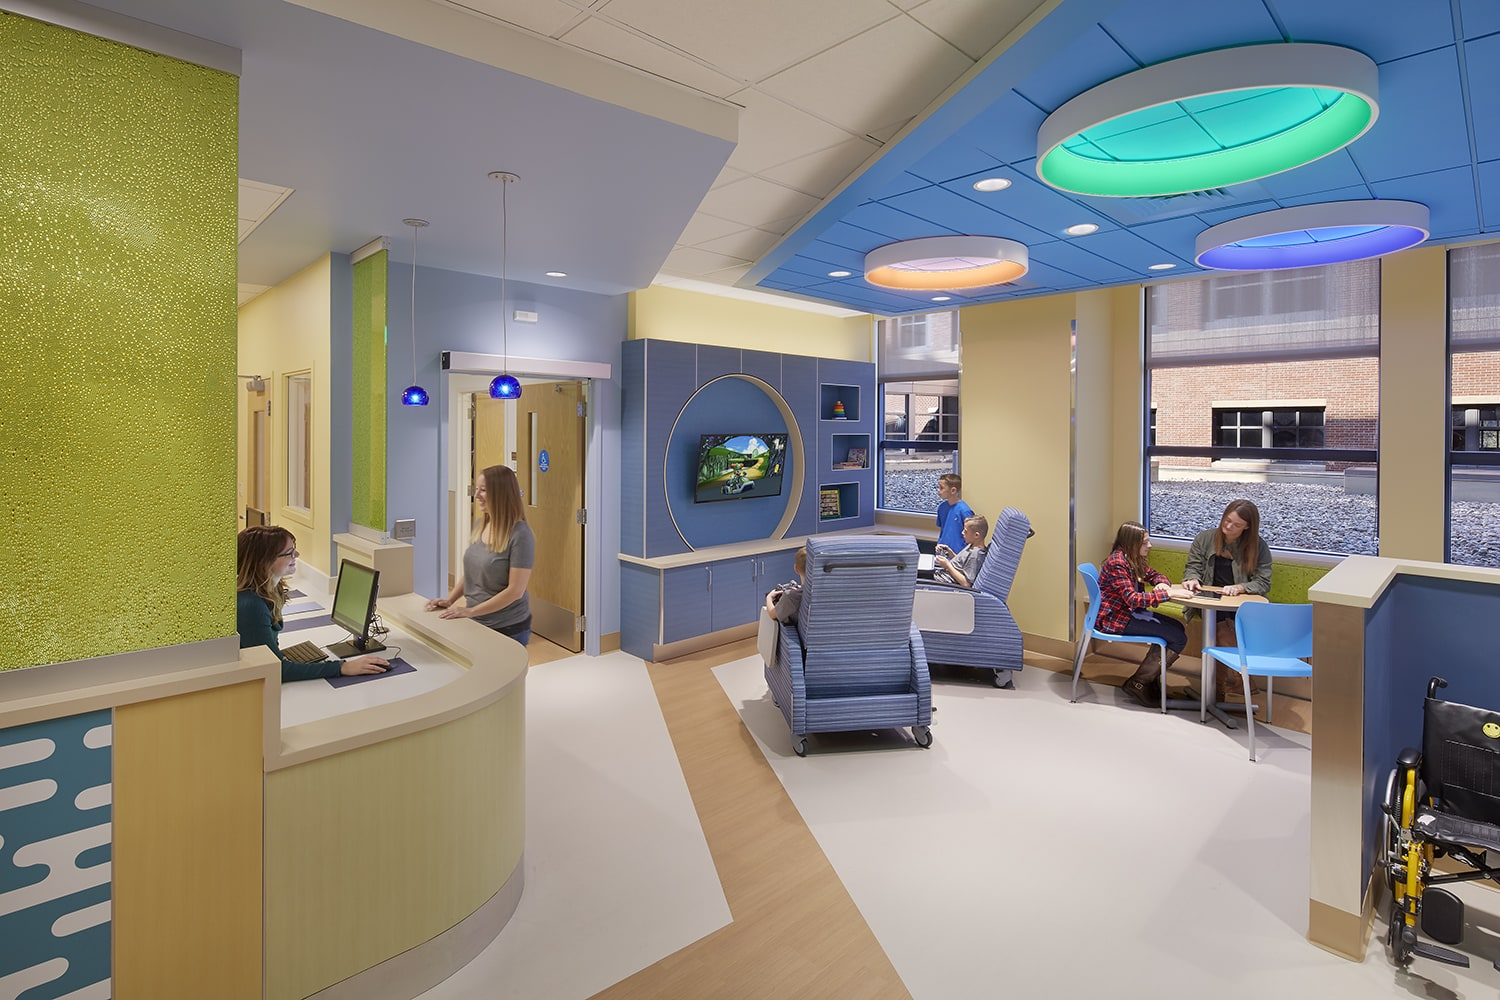 Baystate Medical Pediatrics - BVH Architecture